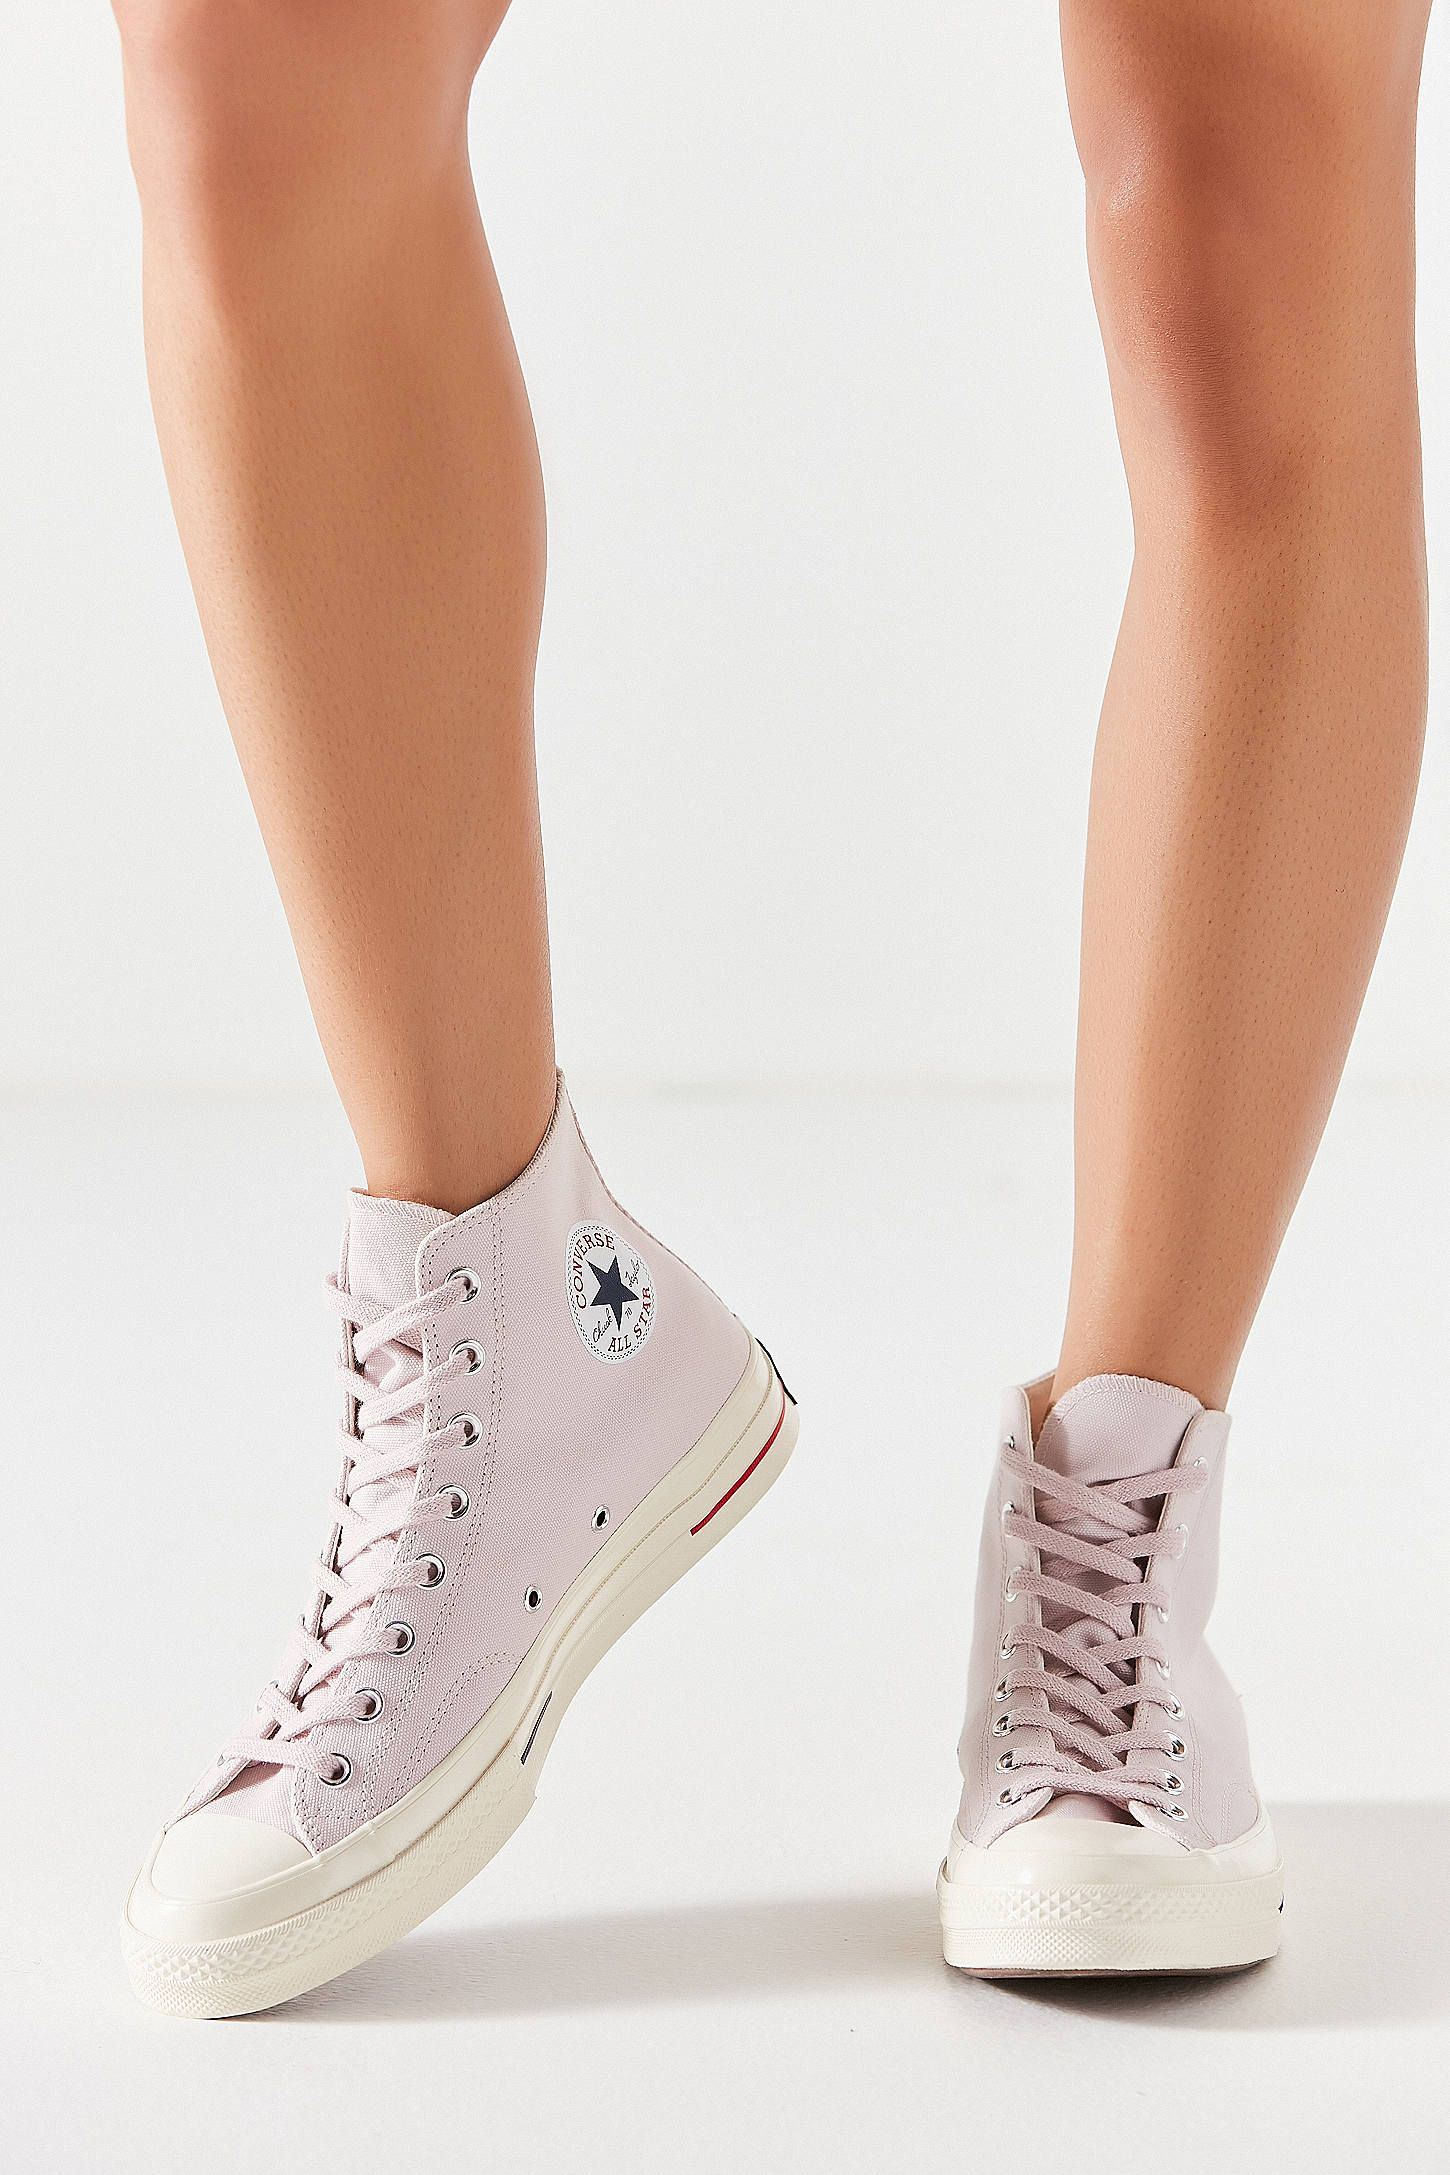 797516f2155a Shop Converse Chuck Taylor  70s Vintage High Top Sneaker at Urban Outfitters  today. We carry all the latest styles